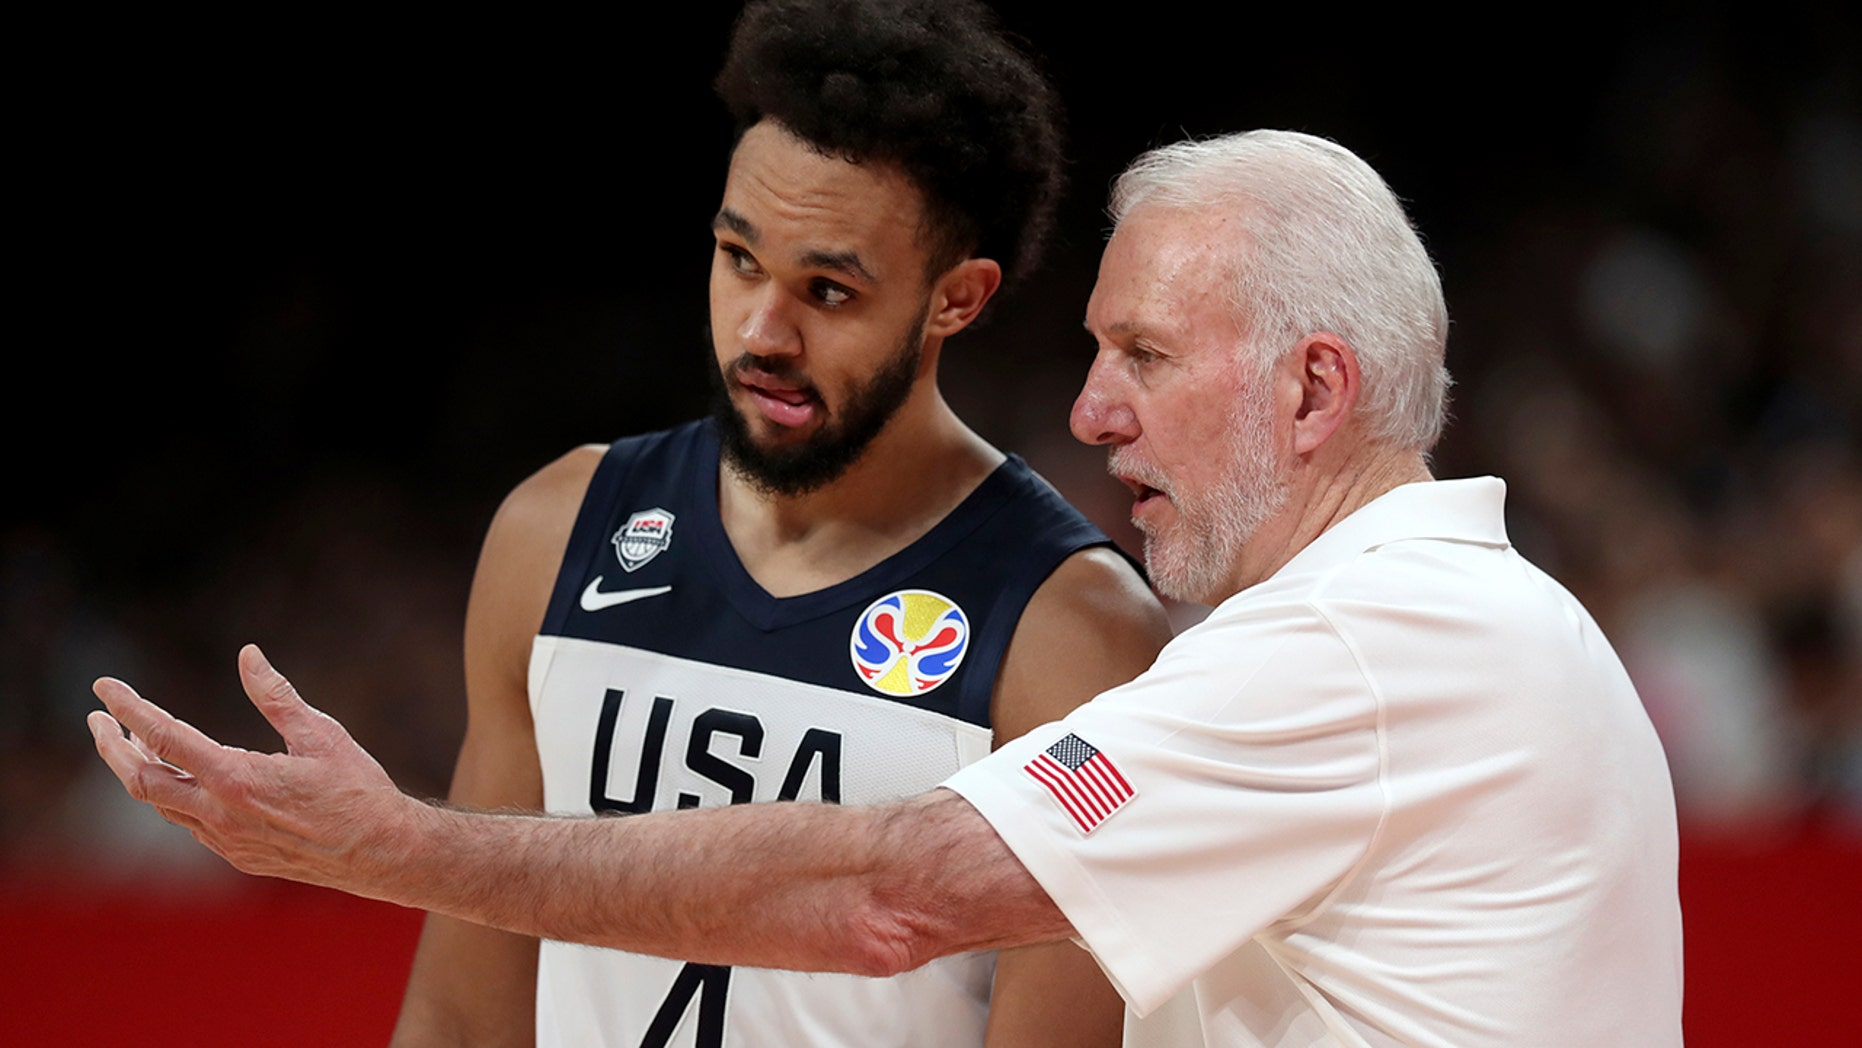 United States' coach Gregg Popovich, right instructs United States' Derrick White during a match against Brazil for the FIBA Basketball World Cup at the Shenzhen Bay Sports Center in Shenzhen on Monday, Sept. 9, 2019. (AP Photo/Ng Han Guan)